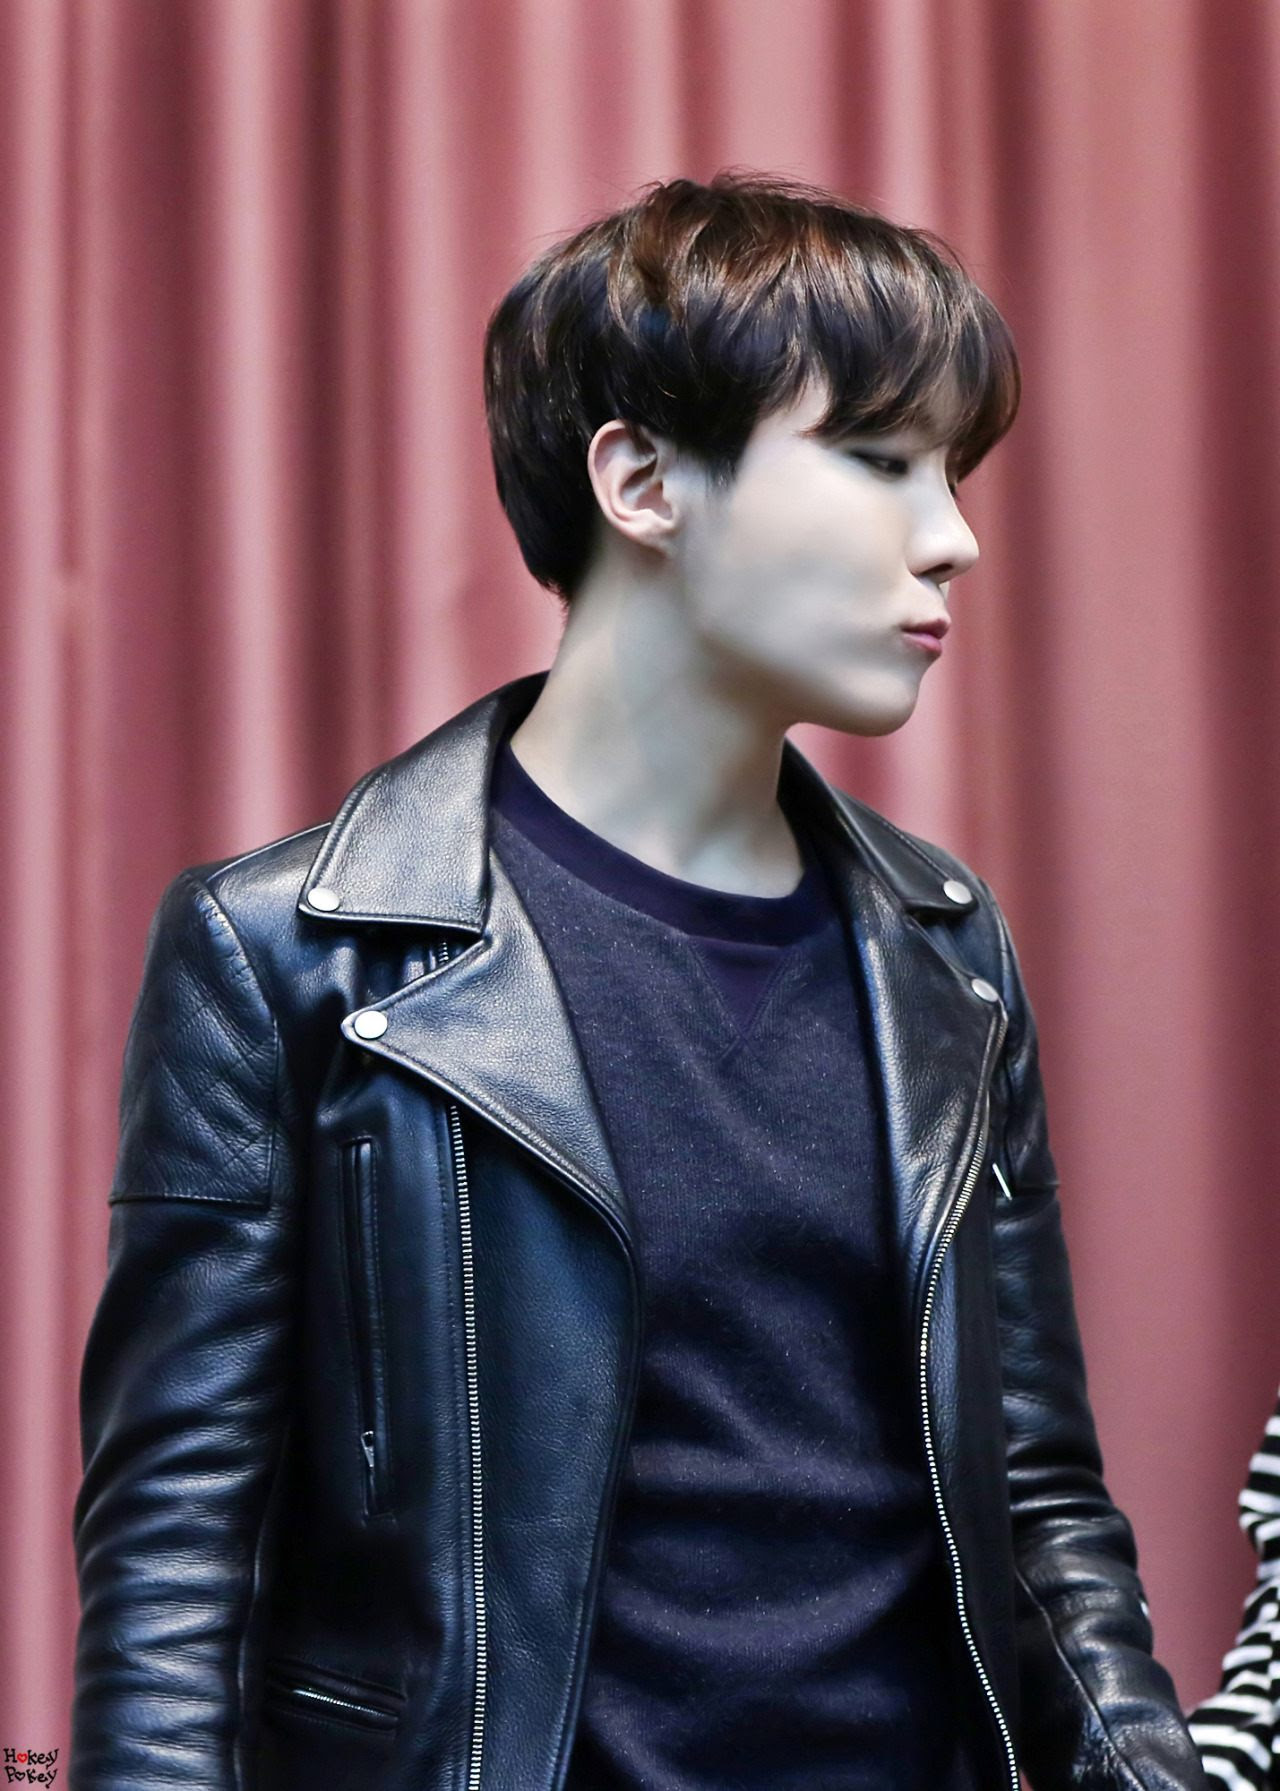 Literally Just 45 High Definition Photos Of J-Hope's Knife Like Jawline — Koreaboo